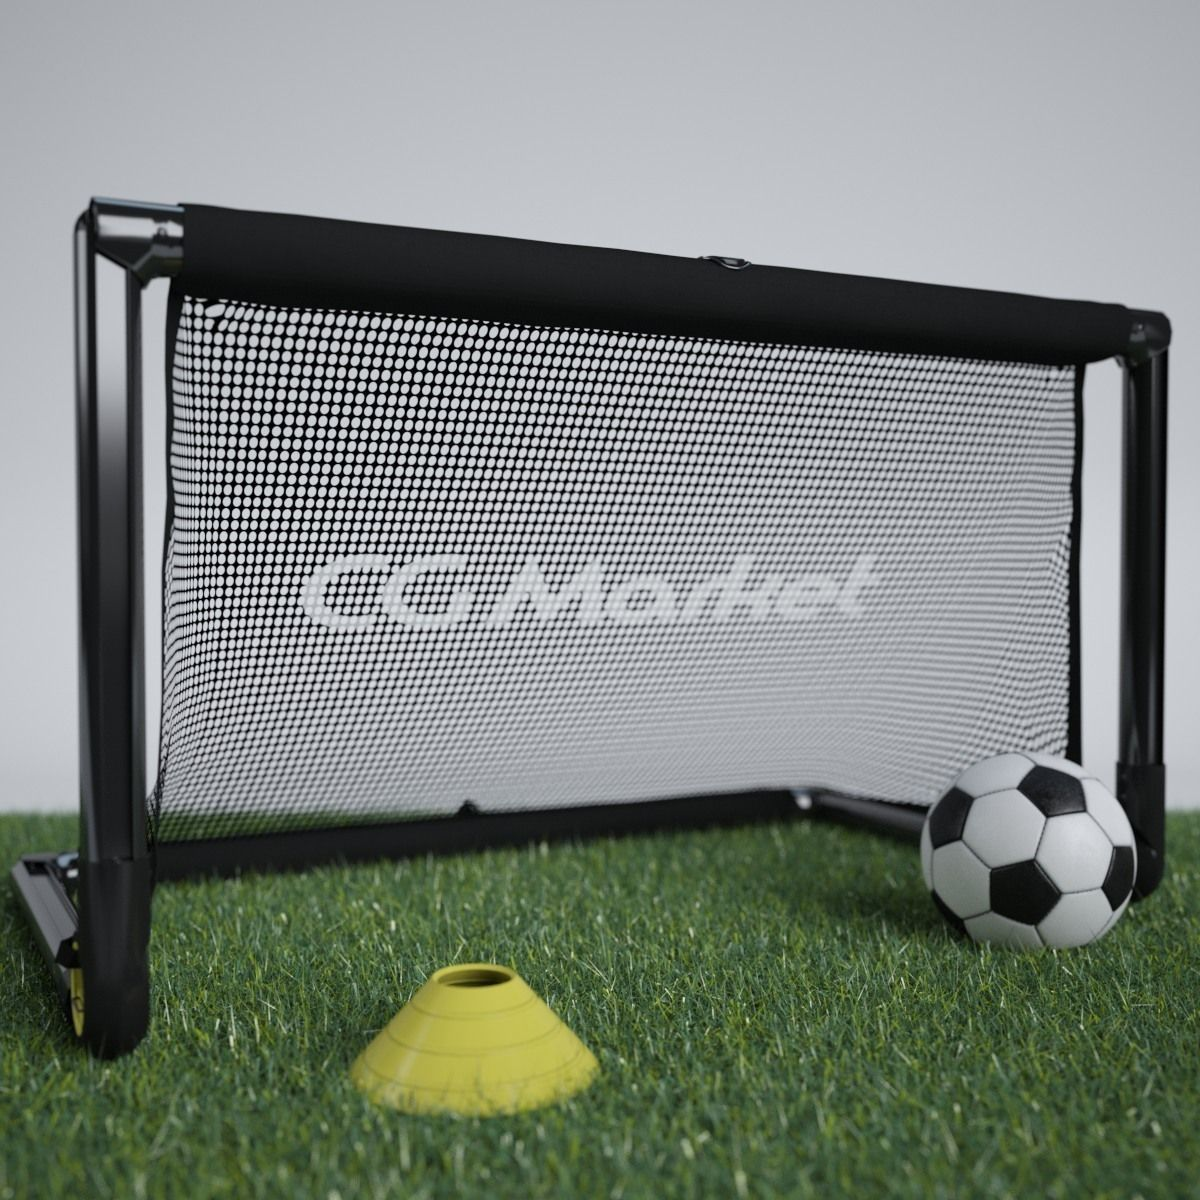 Portable Soccer Goal and Soccer Ball with Training Cone